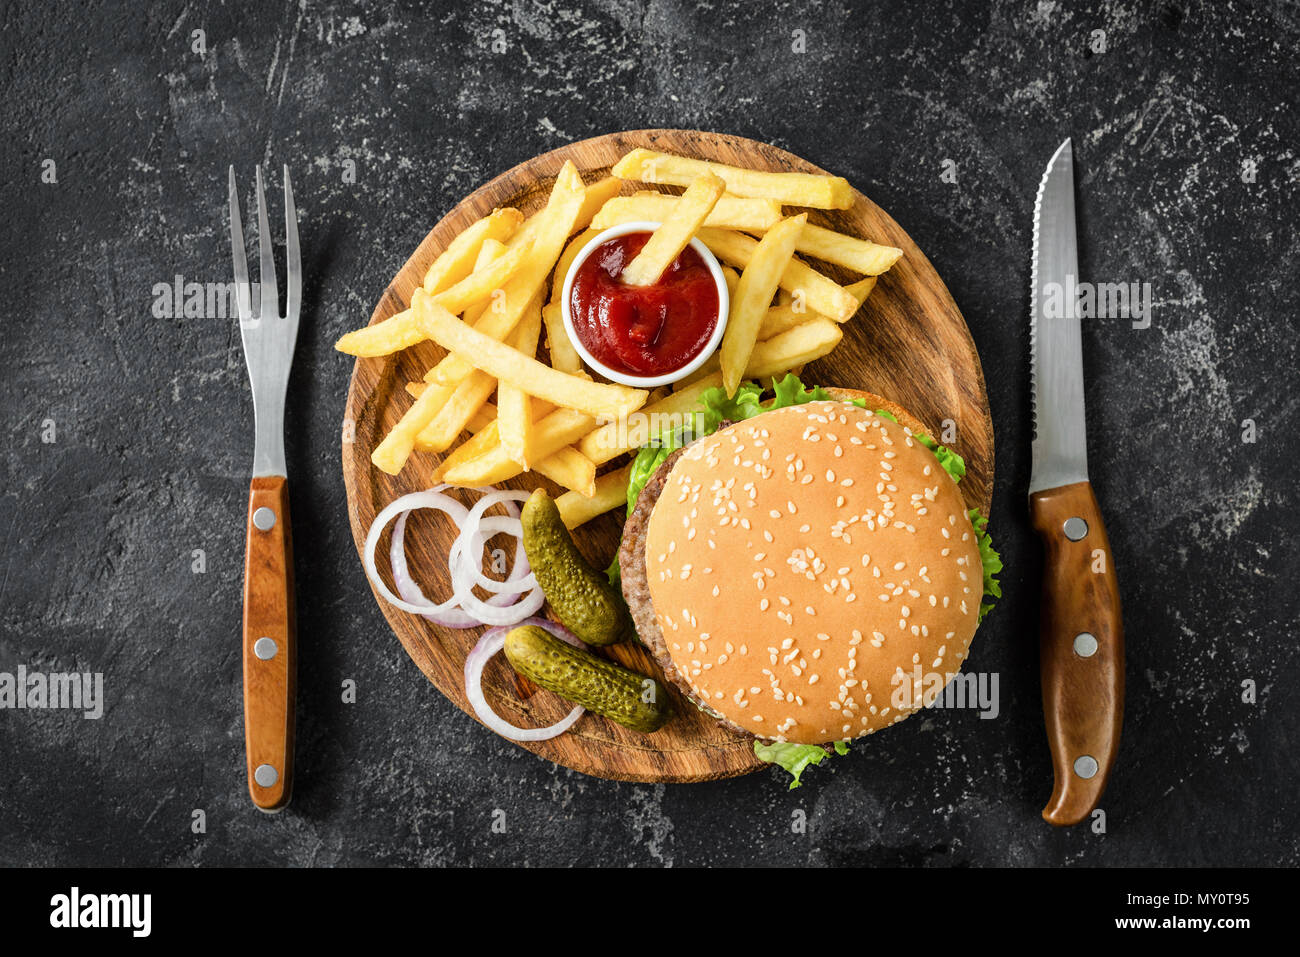 Beef burger, french fries, pickles, onion and ketchup. Table top view. Concept of fast food Stock Photo